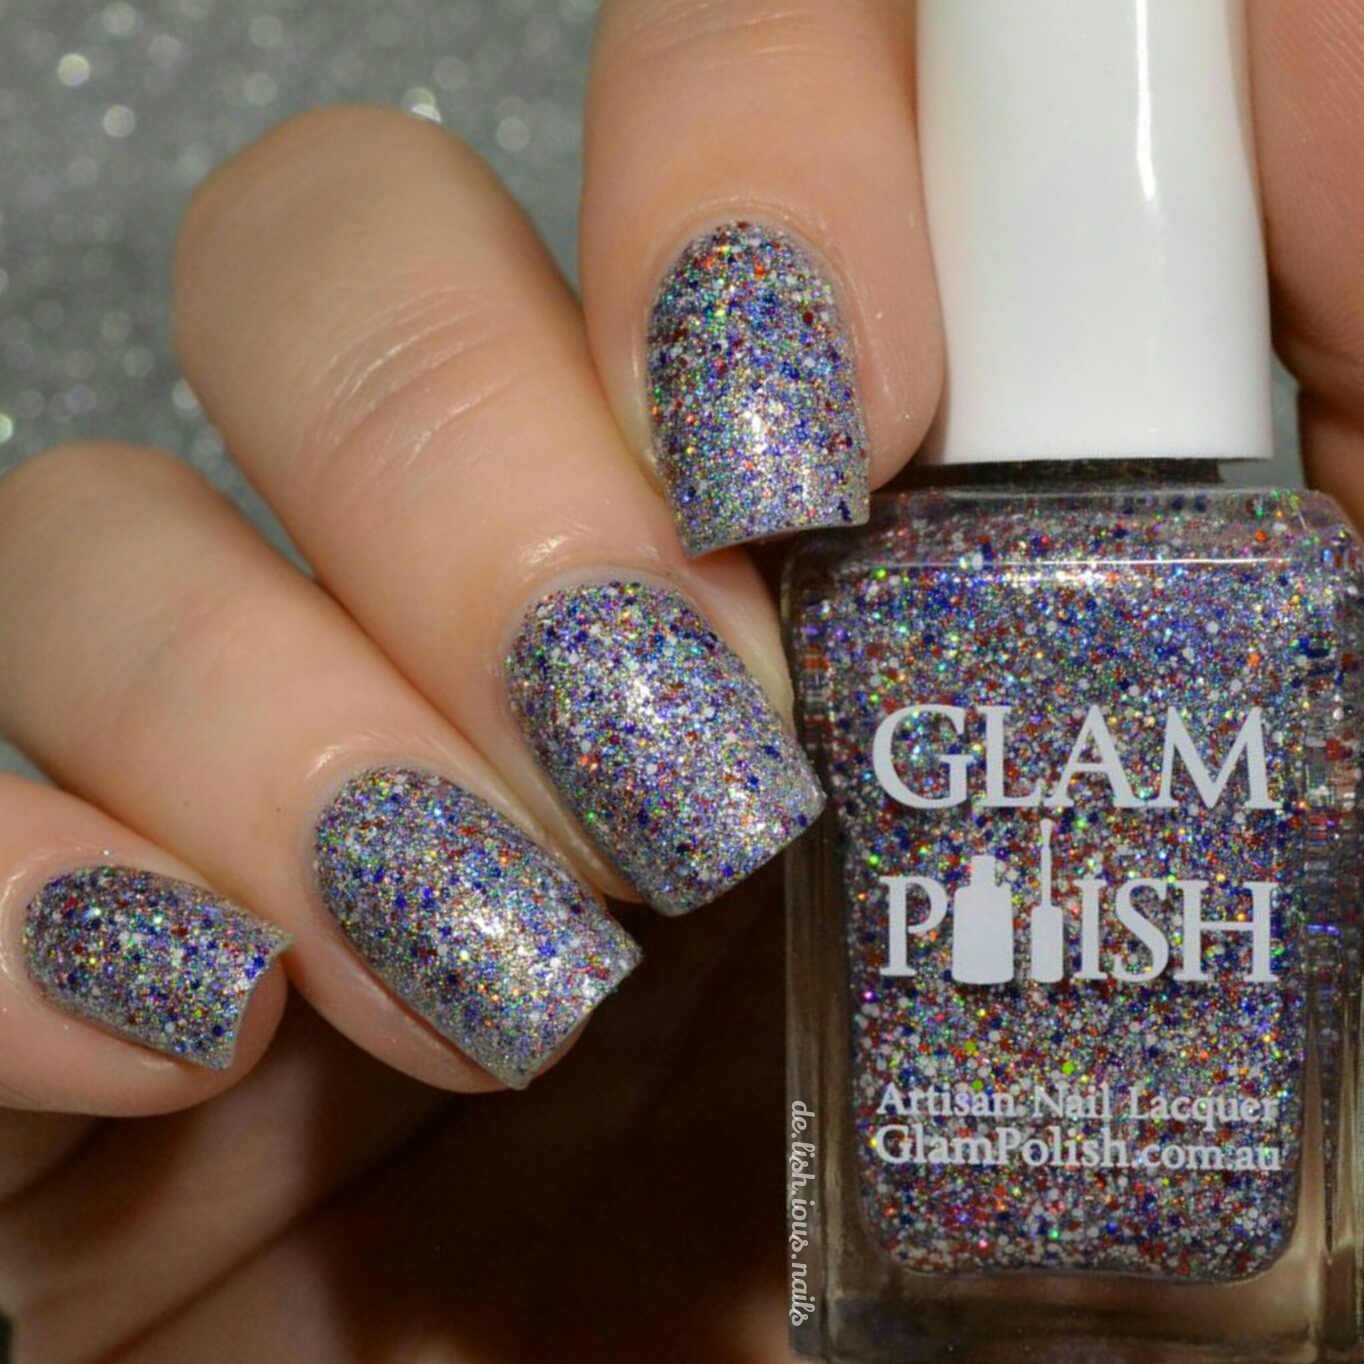 Glam_polish_king_all_shook_up_2